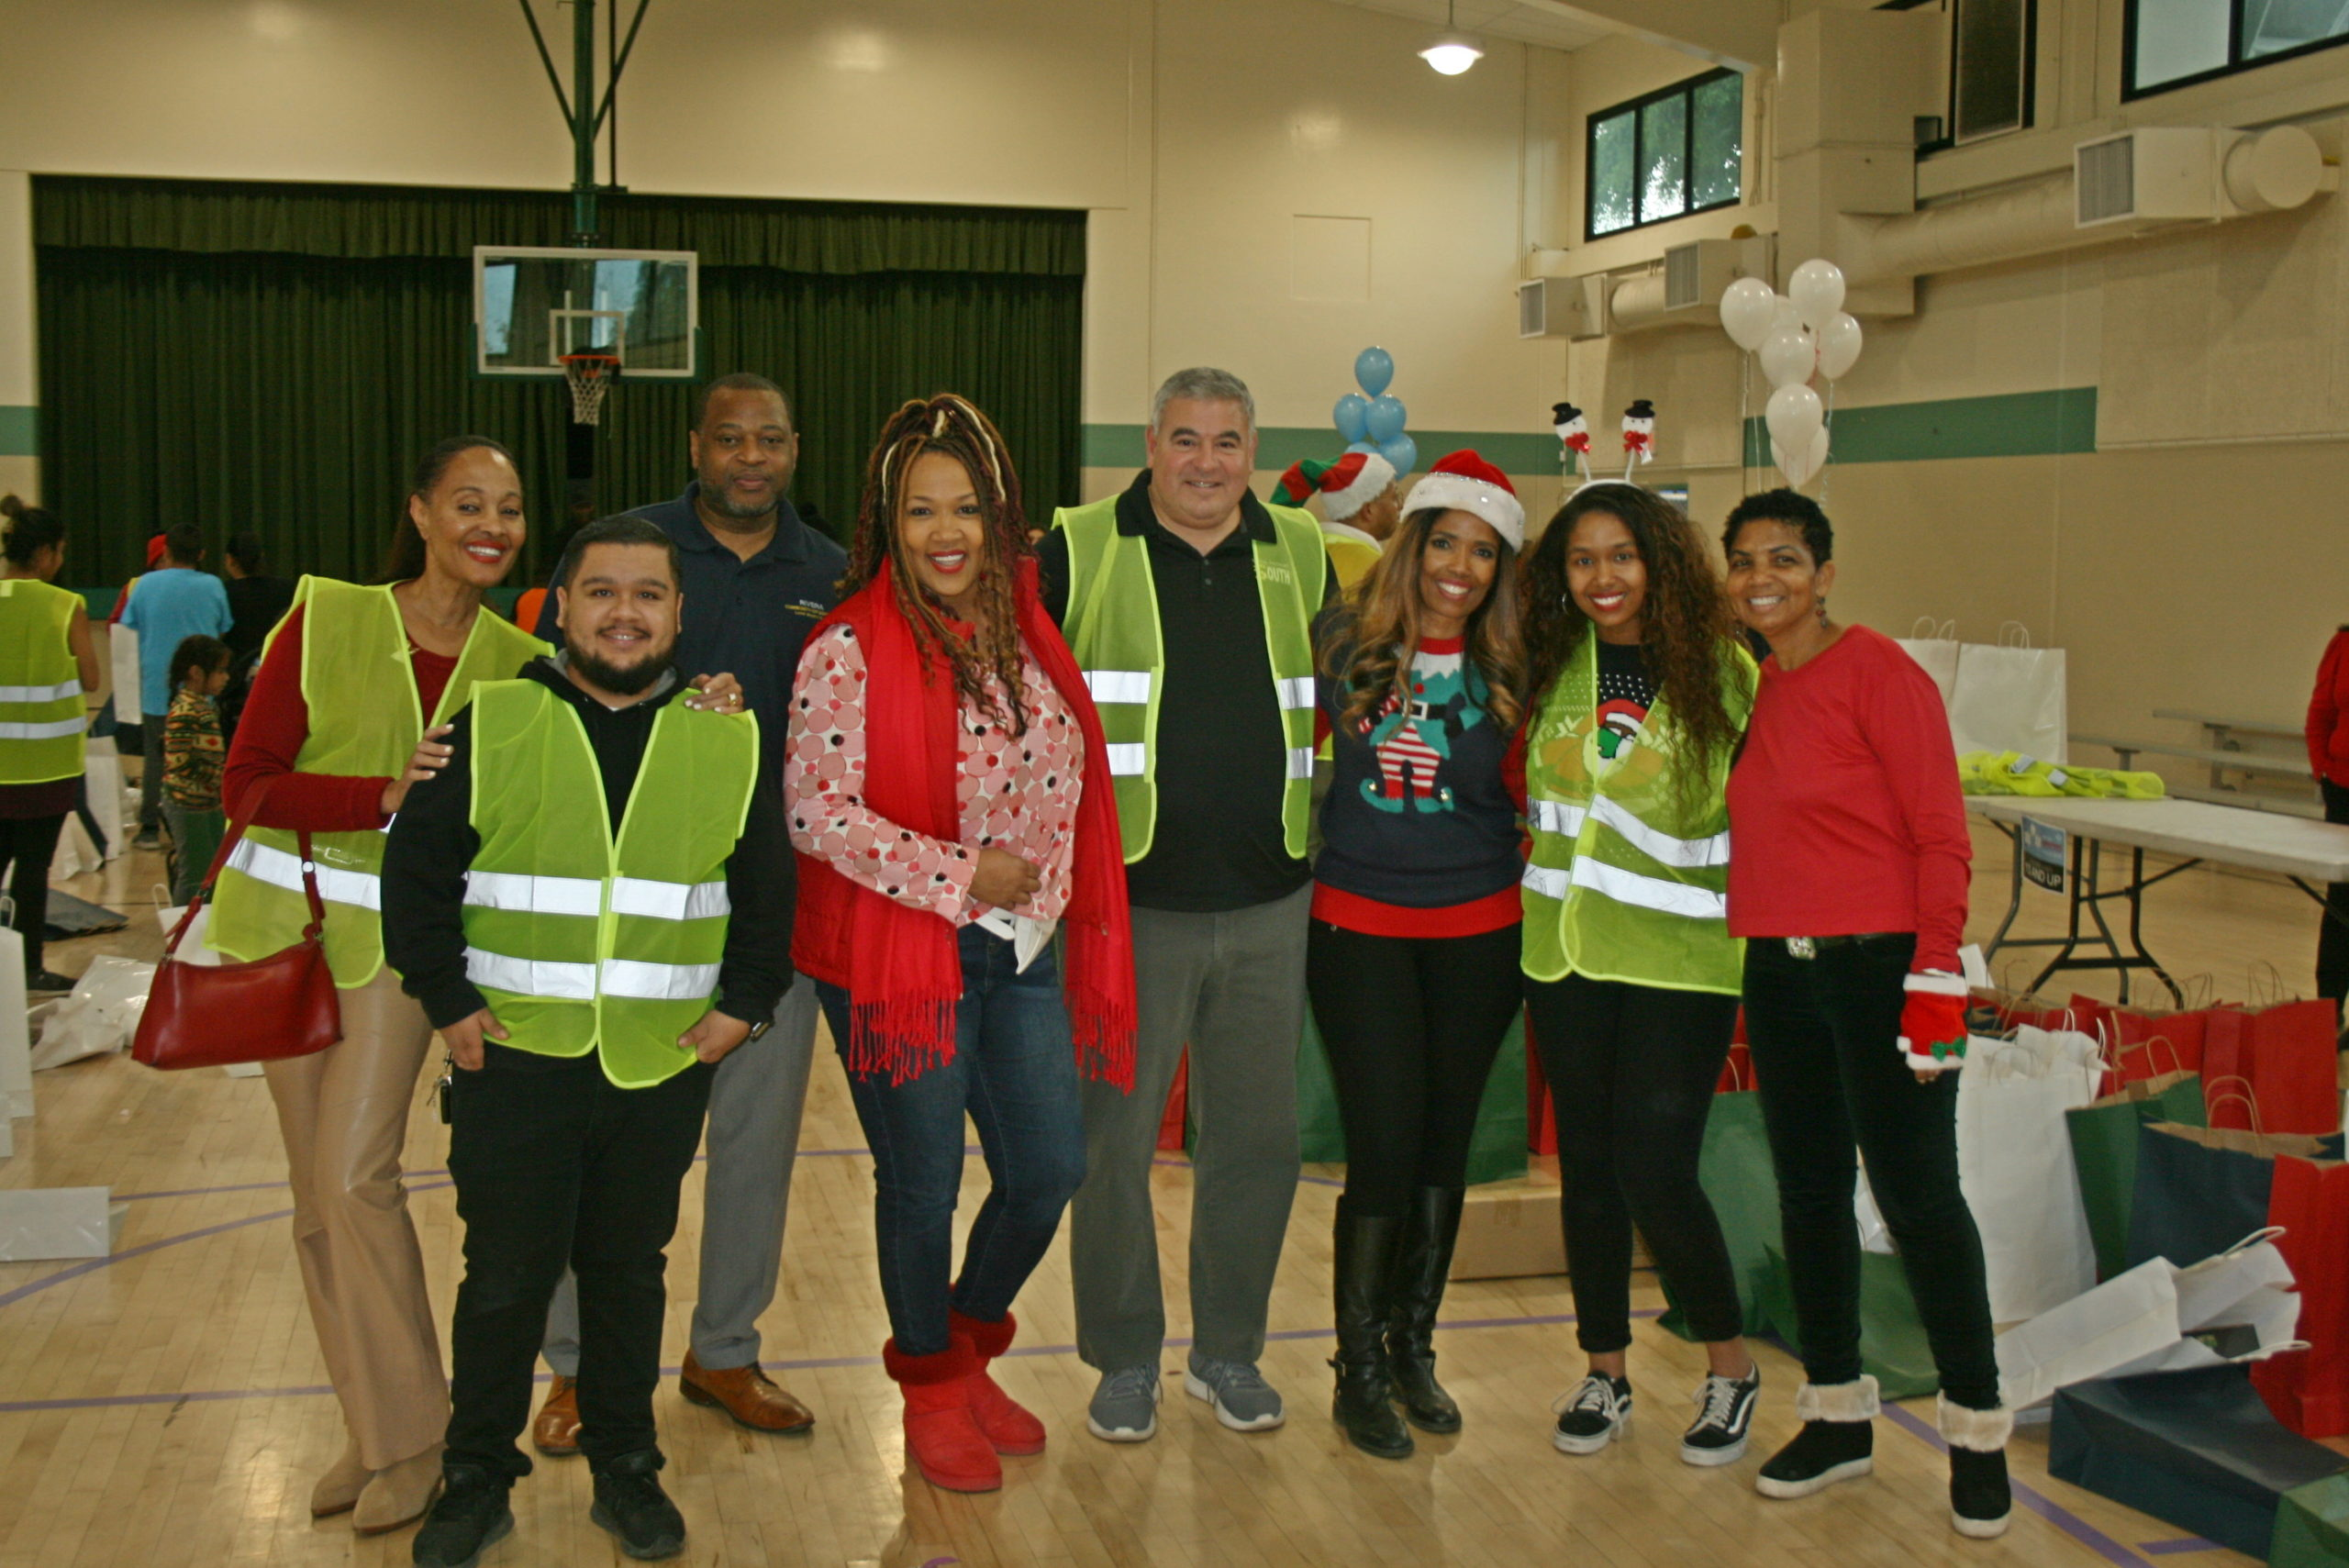 Special Needs Network 11th Annual Christmas Care Exchange